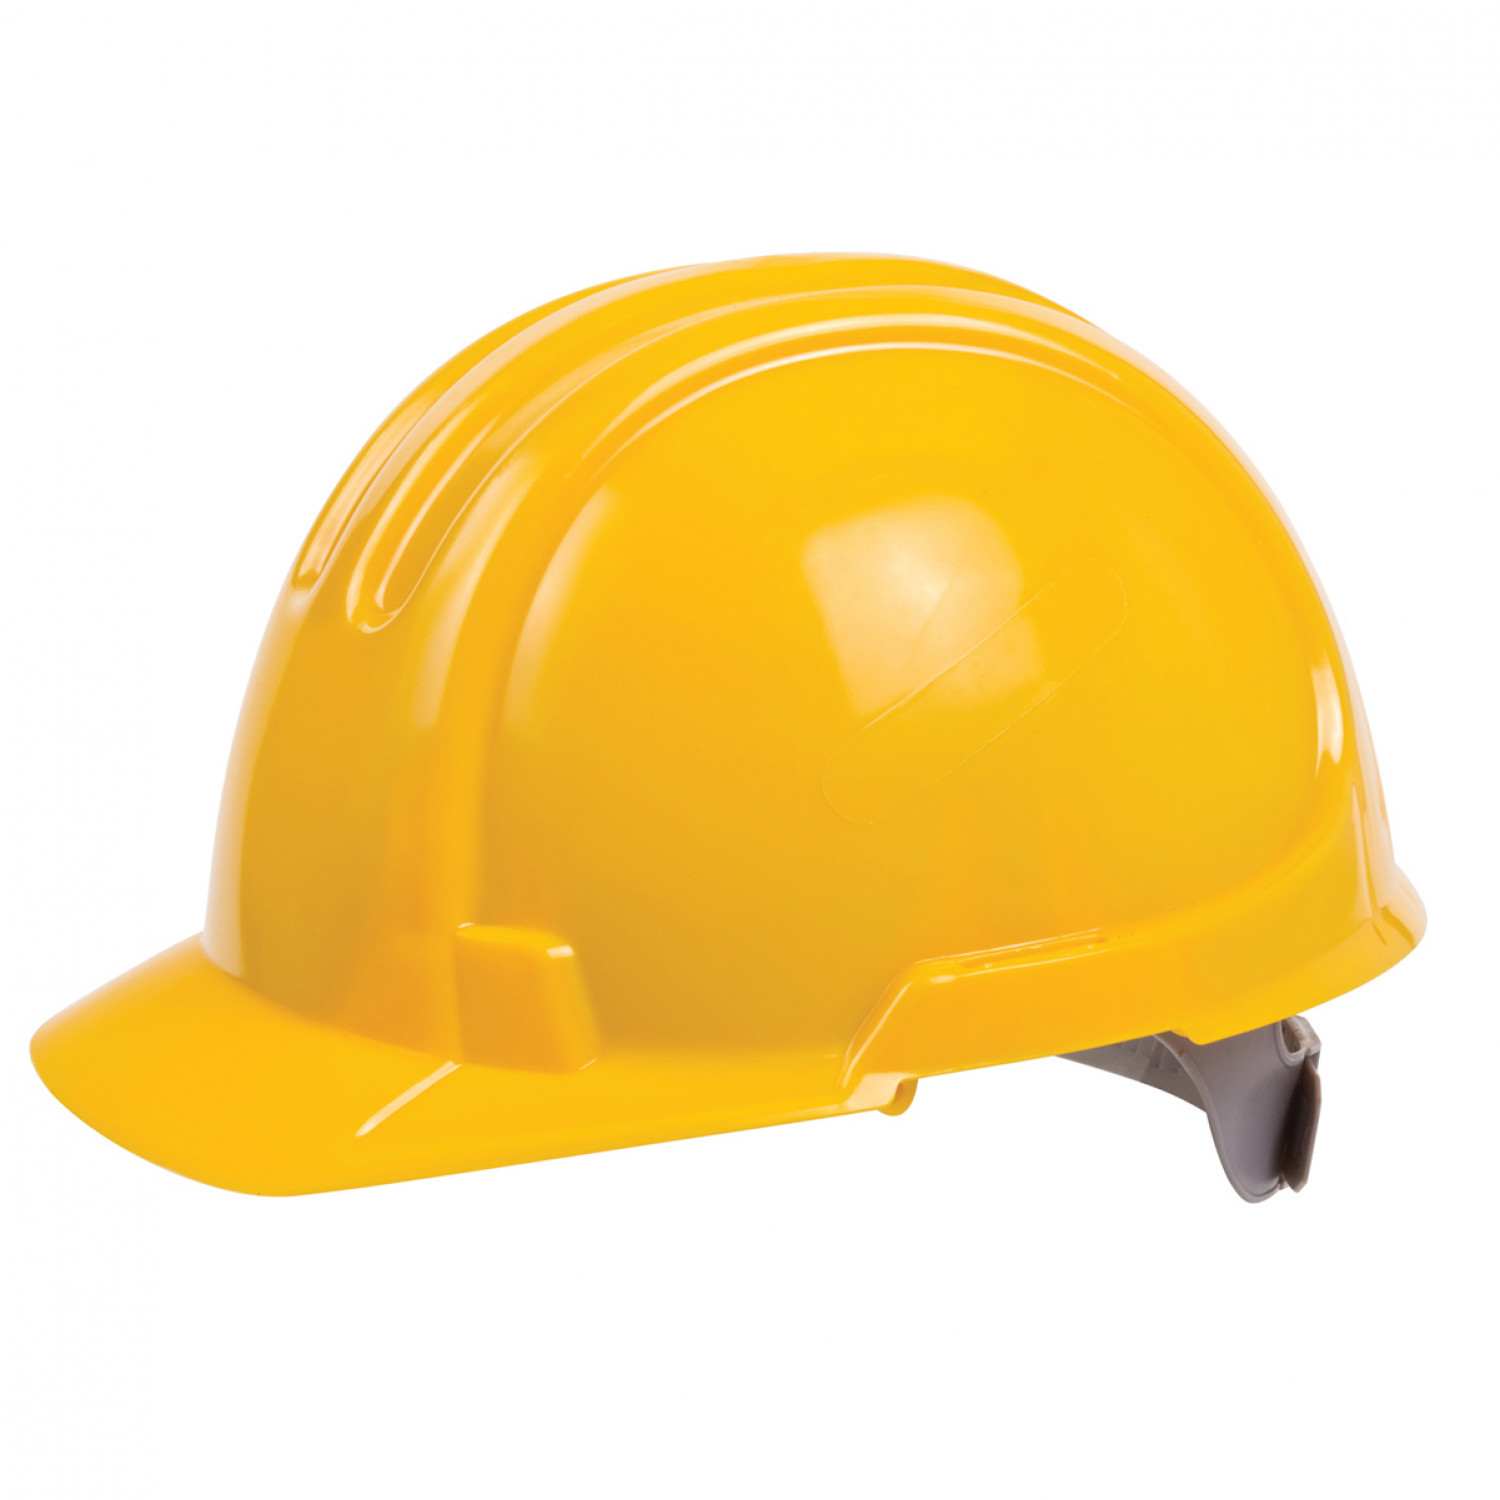 OX UNVENTED HARD HAT - YELLOW